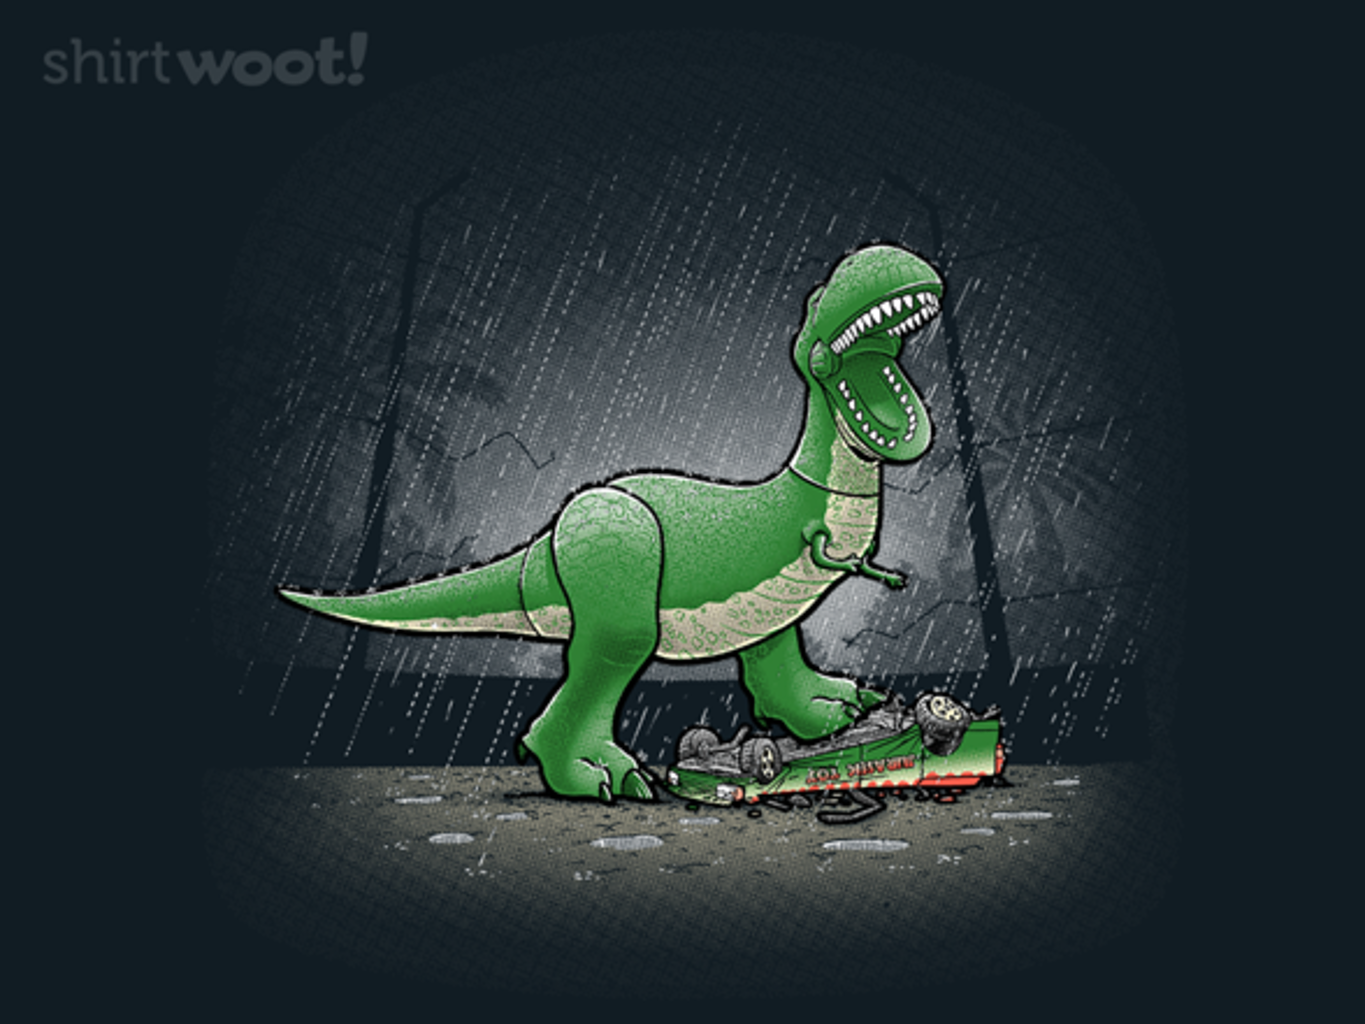 Woot!: Jurassic Toy